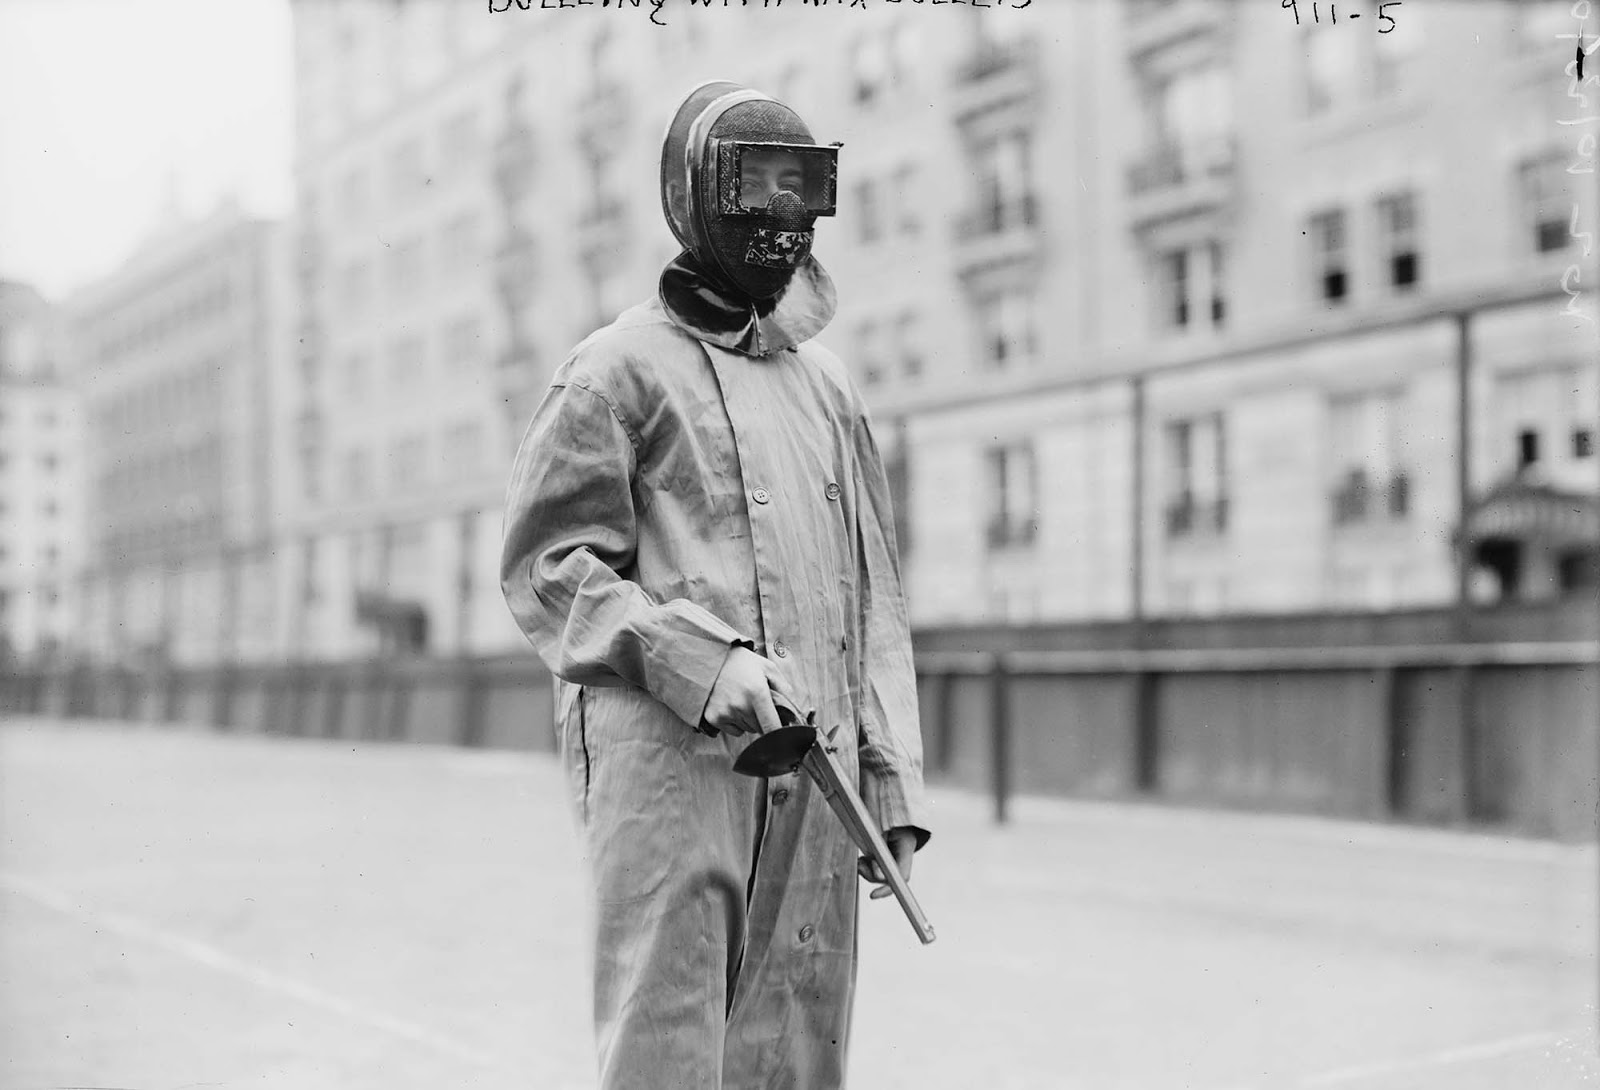 Note the handguard on the pistol's grip to shroud the shooter's exposed hand. The wax bullets used in 1909 were just less-than lethal.